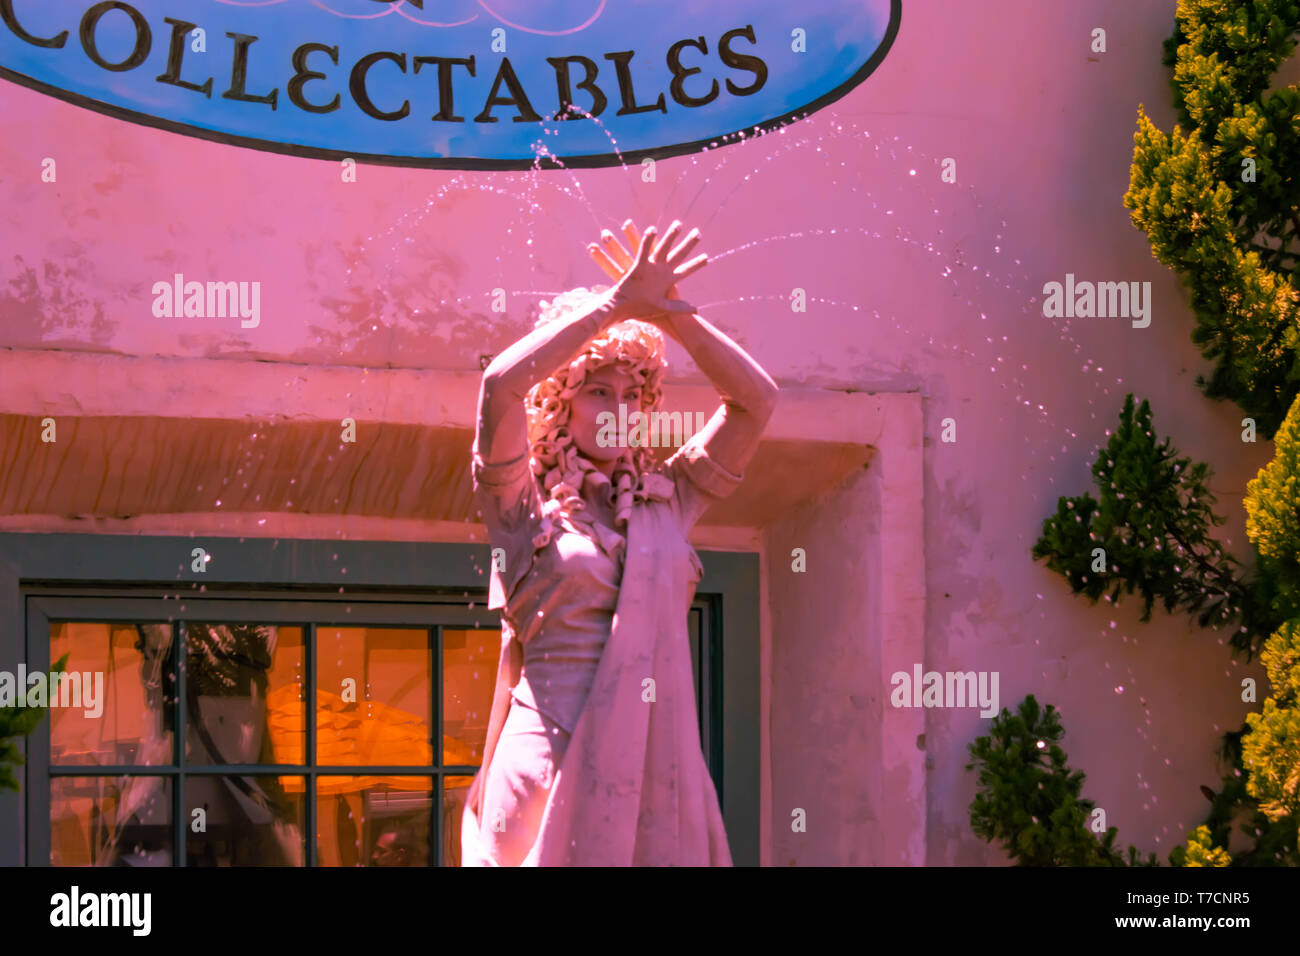 Orlando, Florida. April 20, 2019. Woman living statue throws small jets of water from her hands at Seaworld in International Drive area (1) - Stock Image